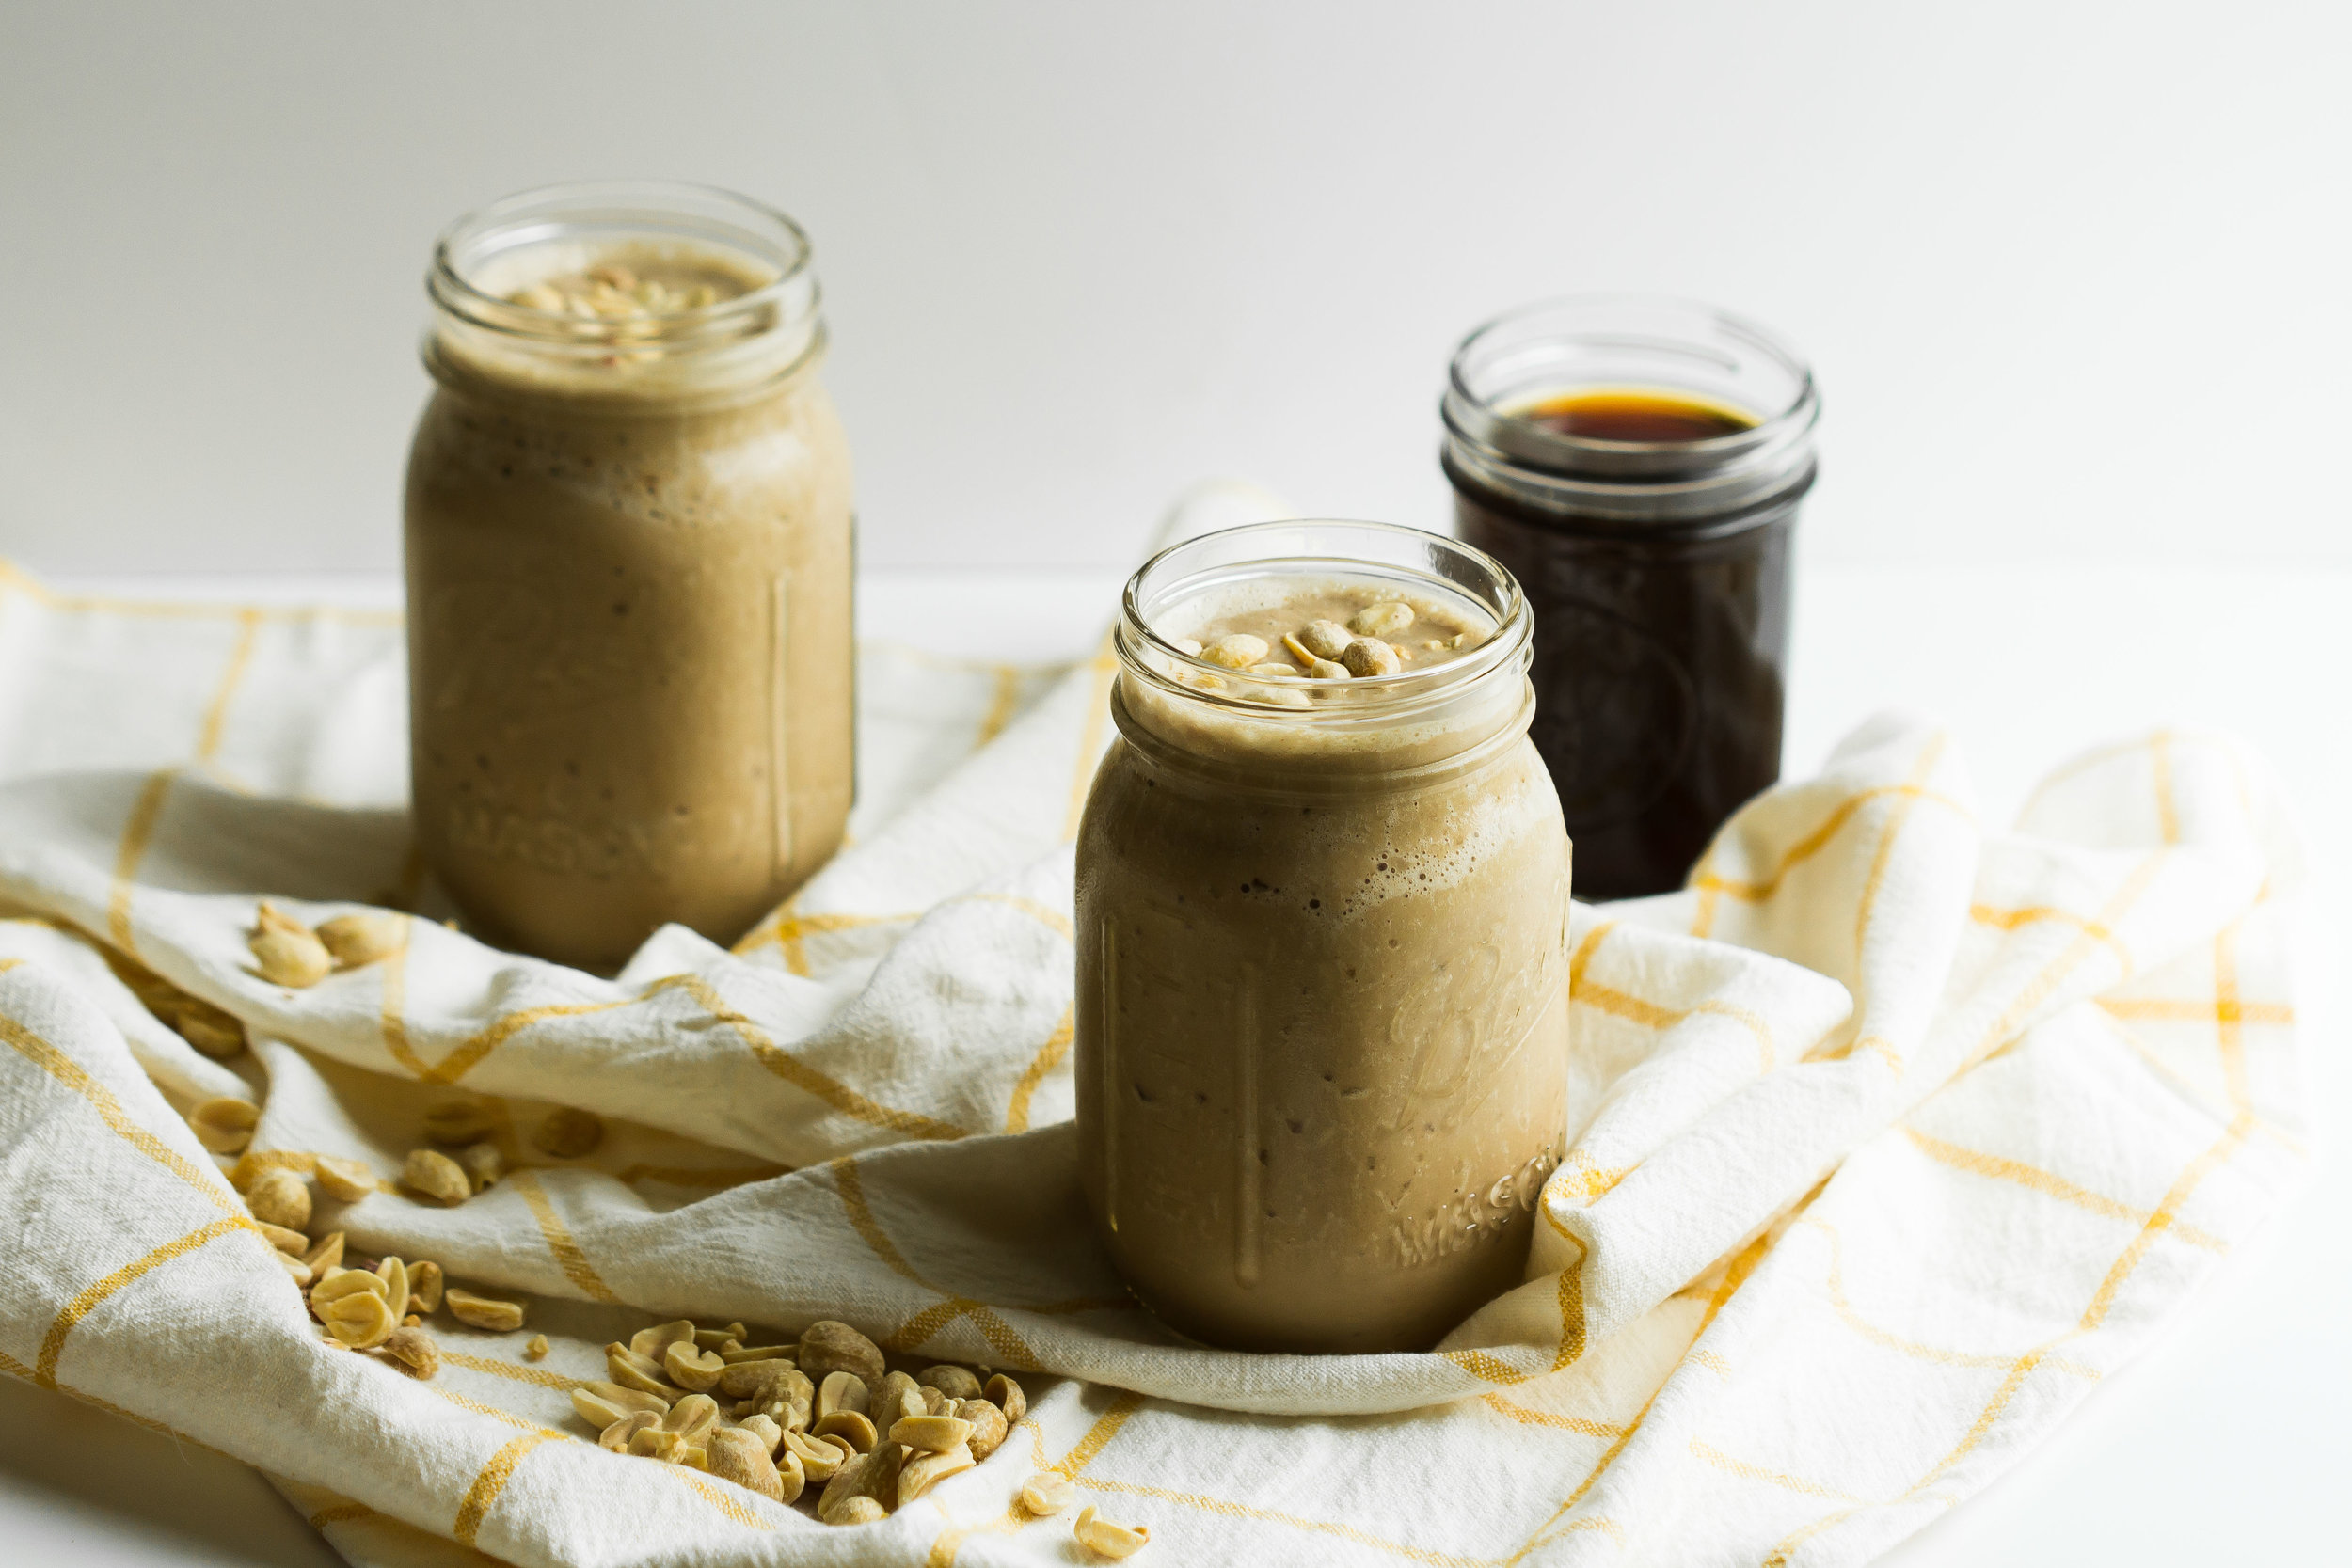 Coffee, Peanut Butter + Banana Smoothie - Sarah J. Hauser